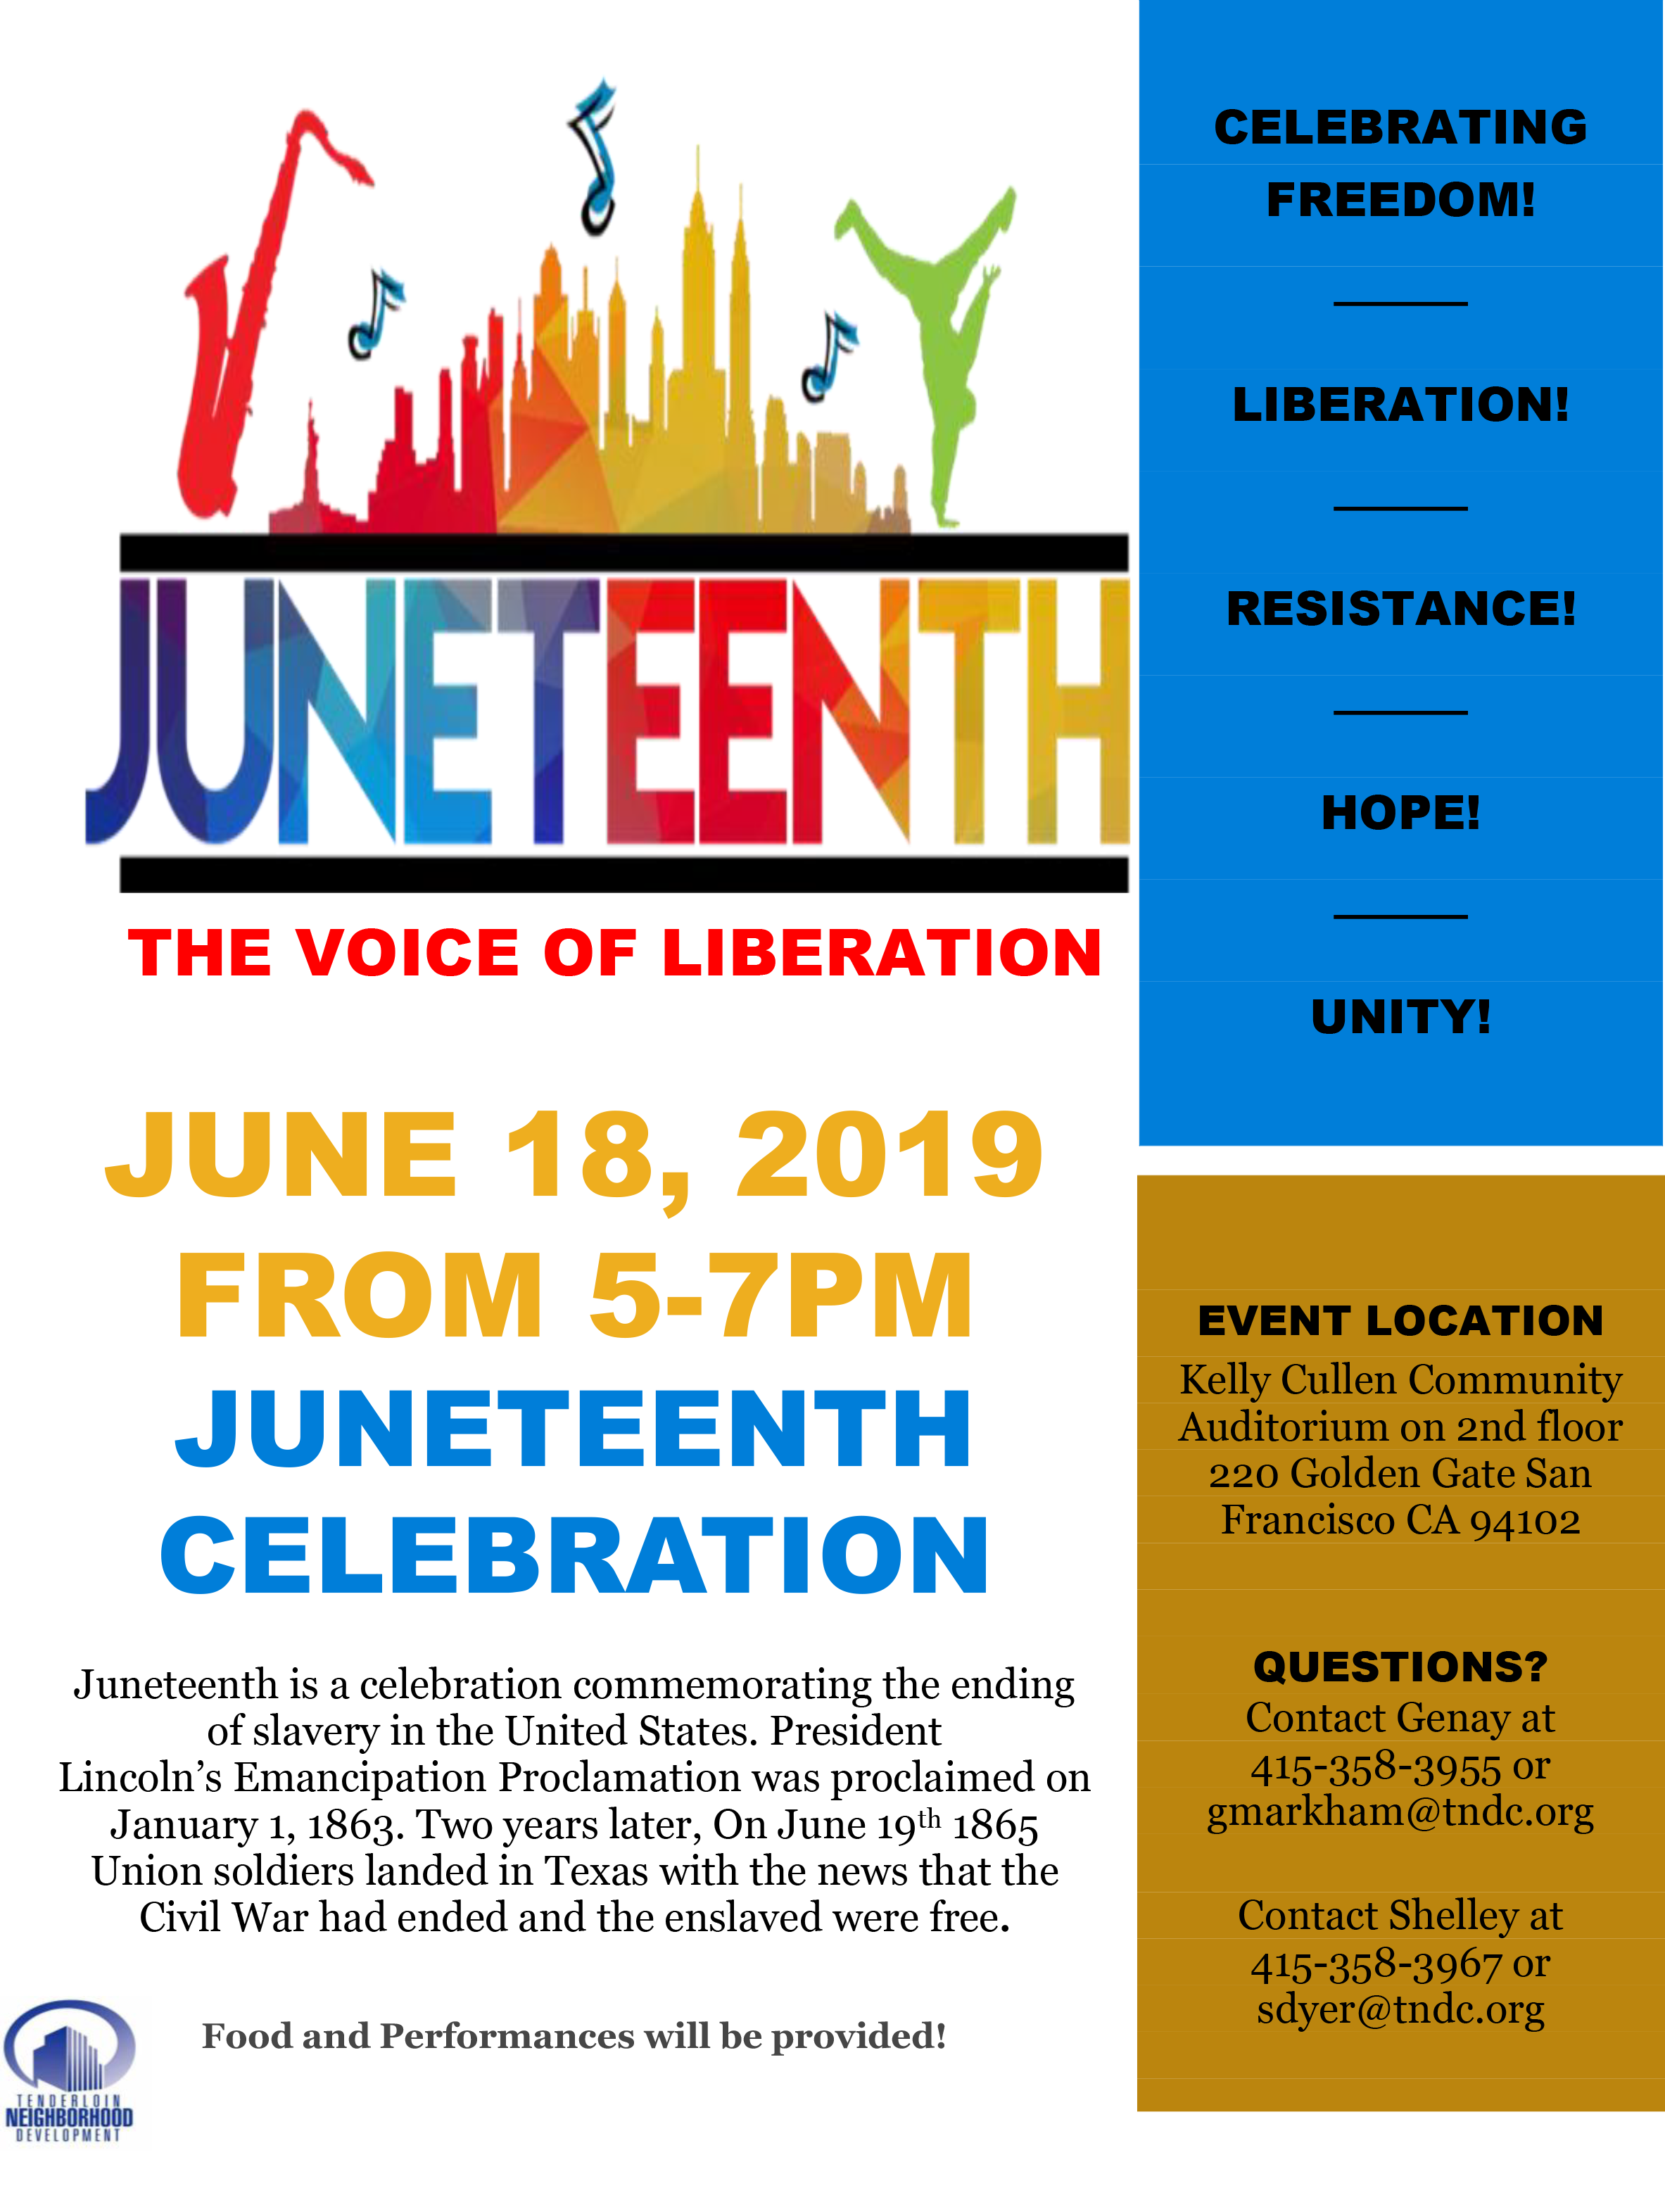 Juneteenth_Celebration_Flyer_2019.png